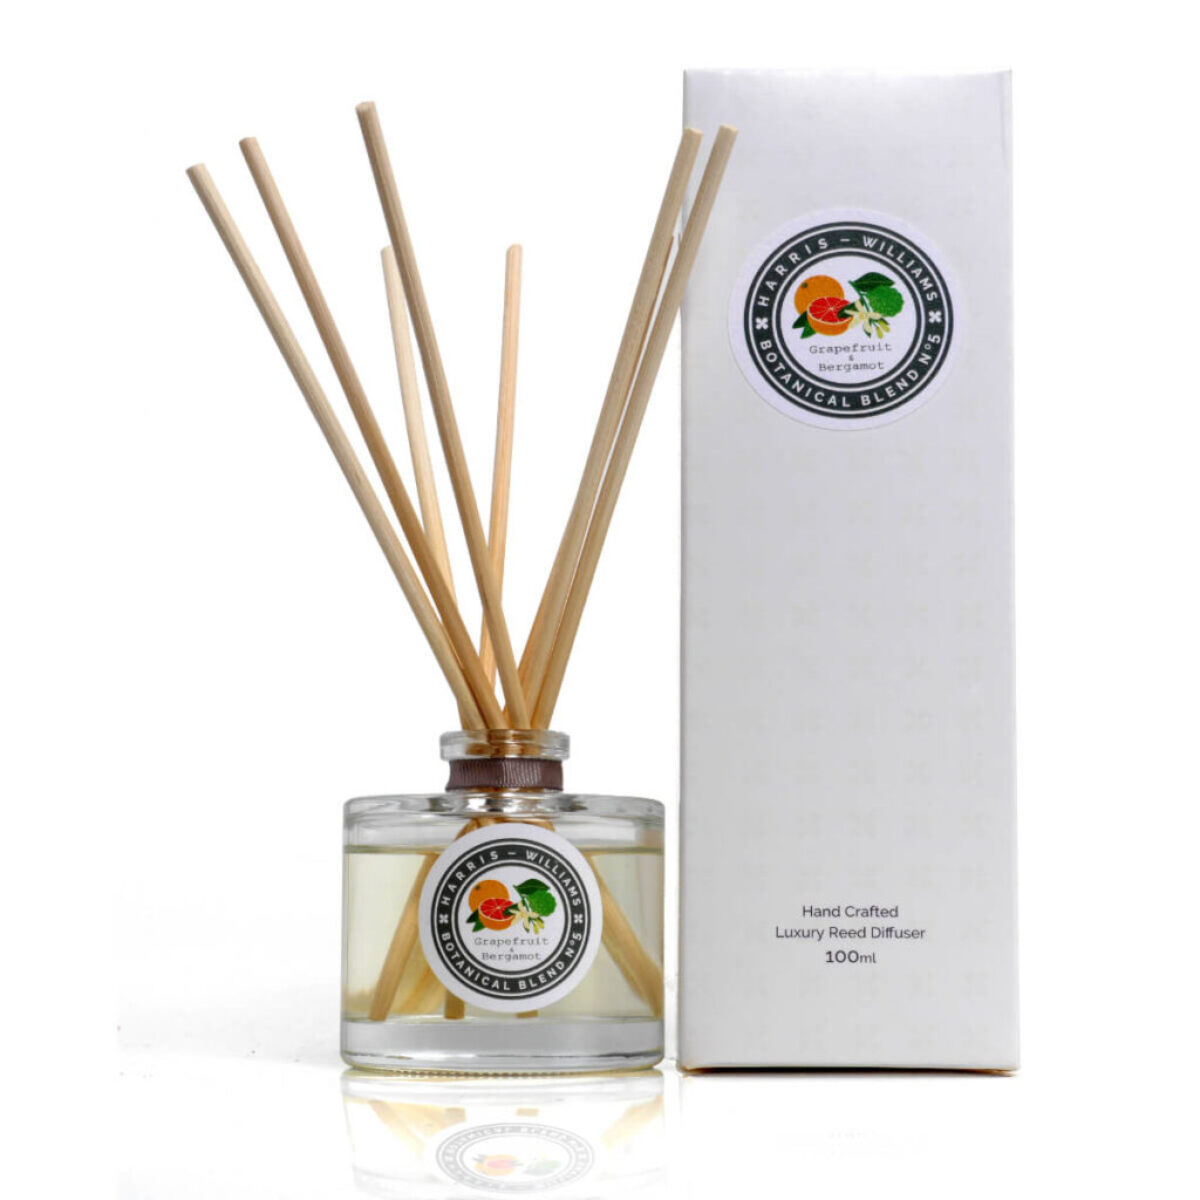 Botanical Blend No 5 Grapefruit & Bergamot Reed Diffuser